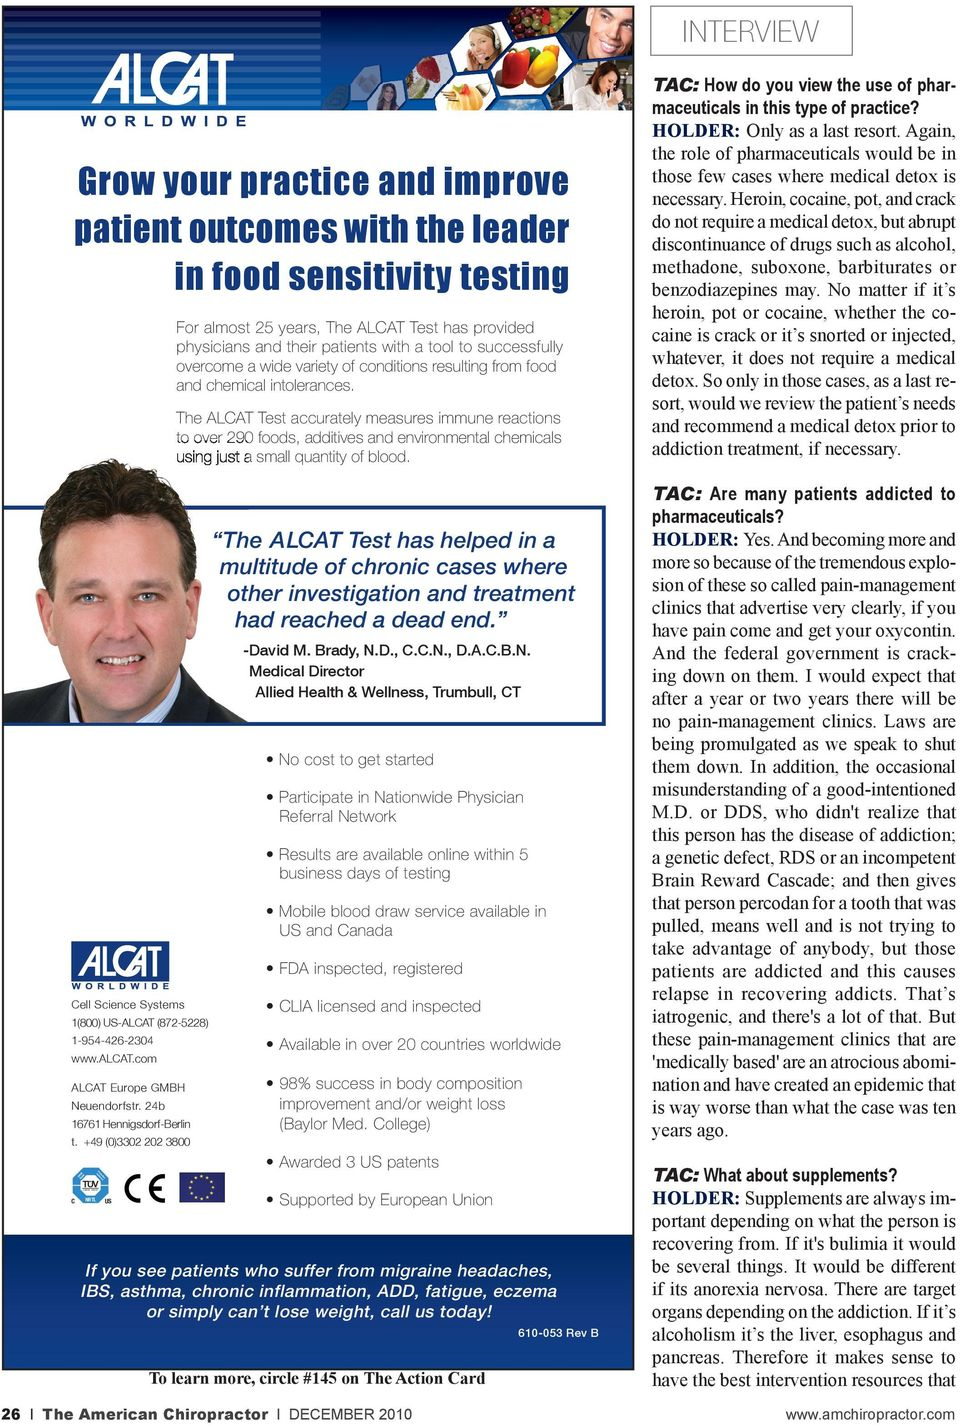 The ALCAT Test accurately measures immune reactions to over 290 foods, additives and environmental chemicals using just a small quantity of blood.